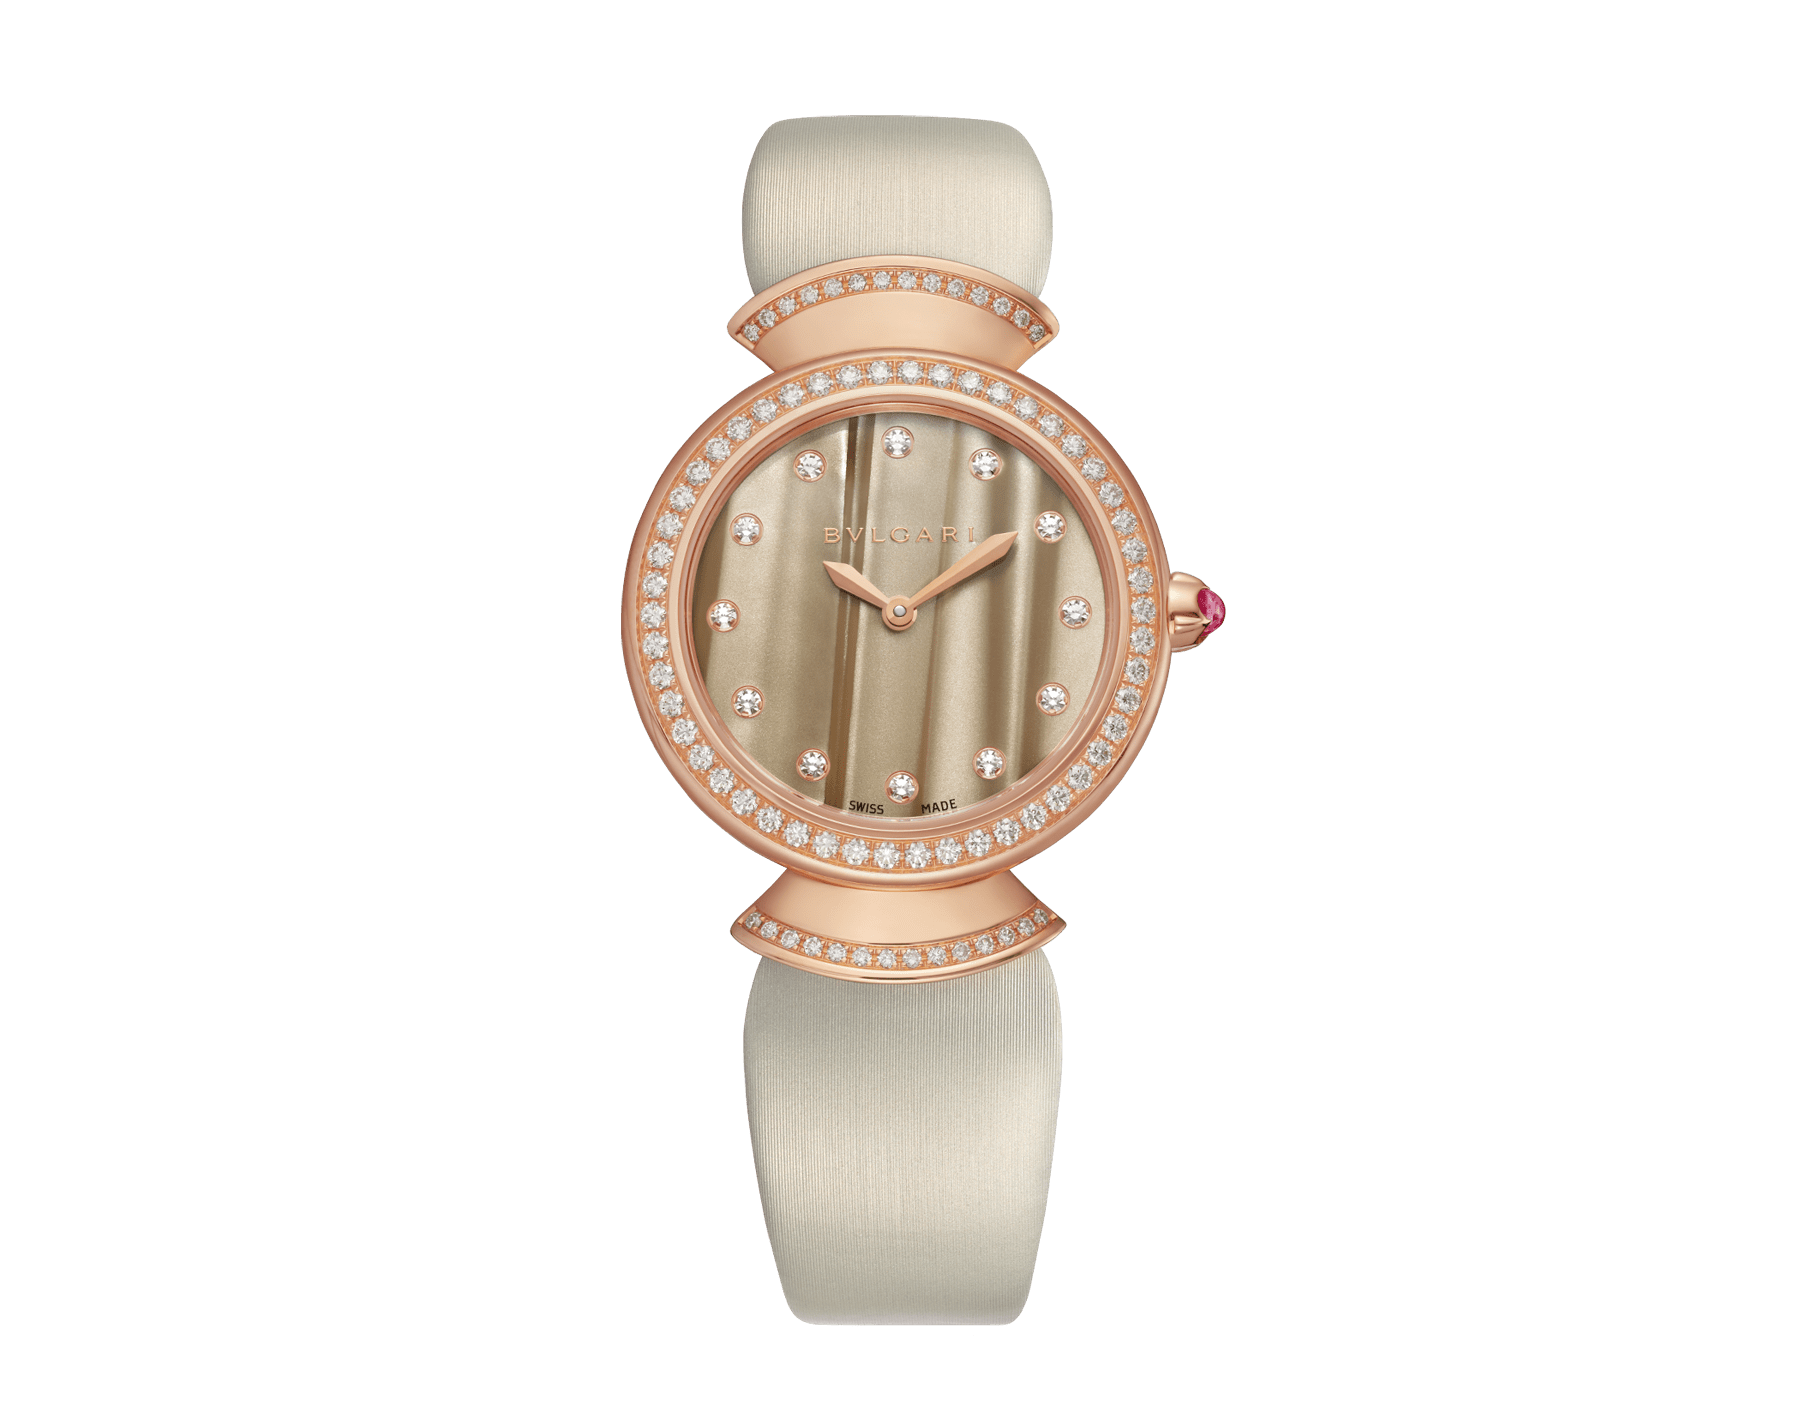 Montre DIVAS' DREAM avec boîtier en or rose 18 K serti de diamants taille brillant, cadran en acétate naturel, index sertis de diamants et bracelet en satin couleur bronze 102435 image 1